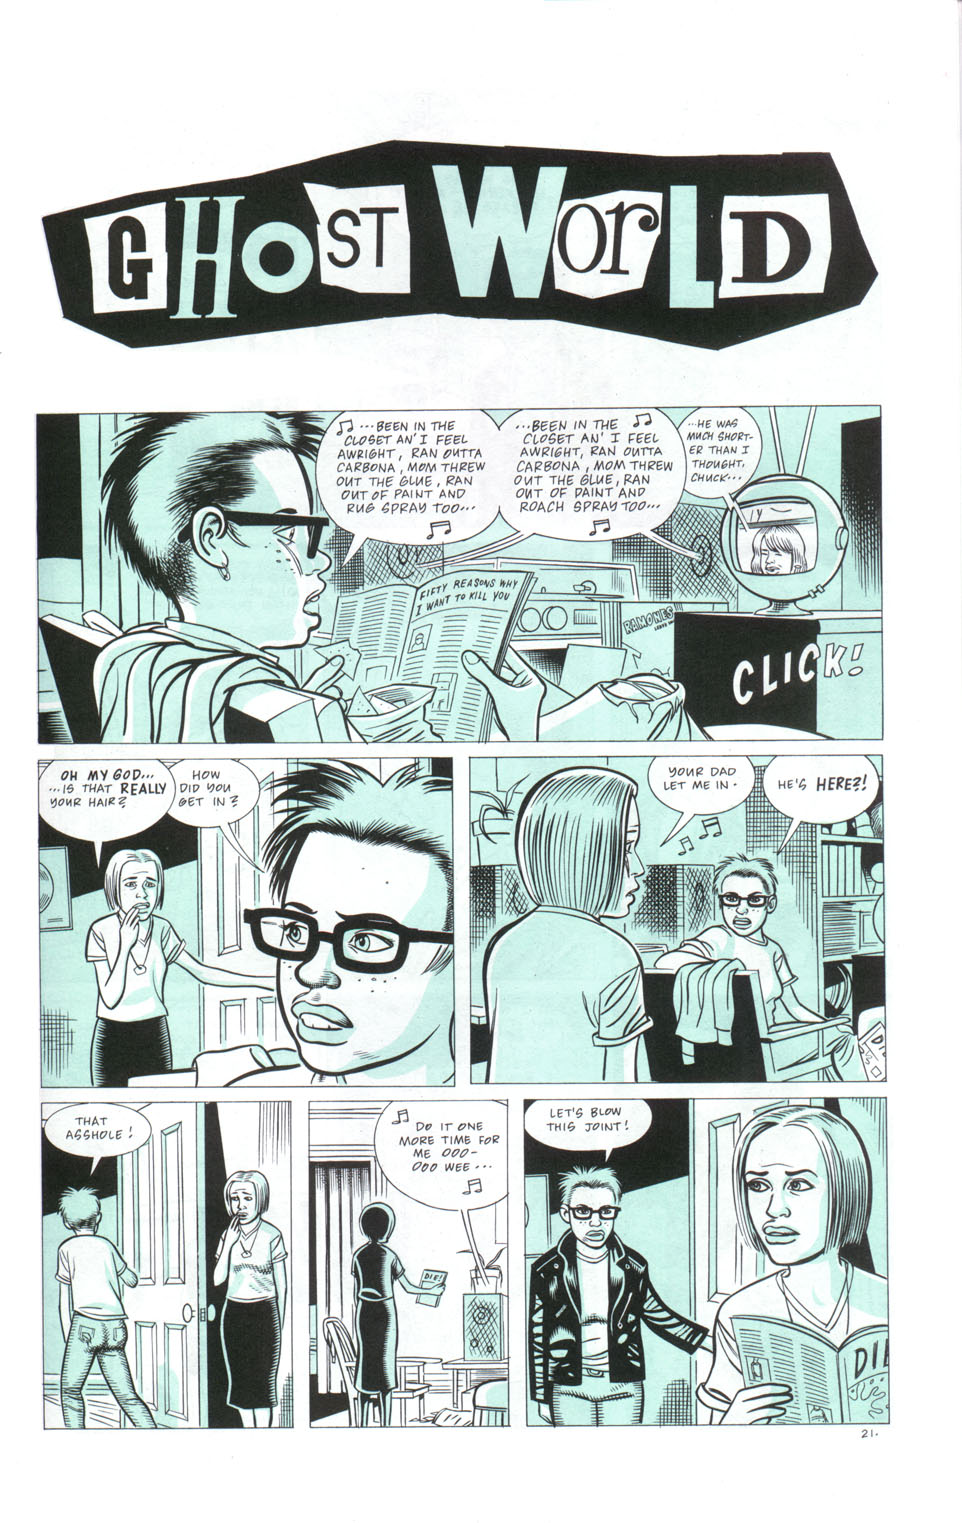 ghost world comic essay Thurschwell's essay will no doubt be of use to literary critics and comics scholars  who wish to discuss comics as literature, as she reads ghost world in relation.